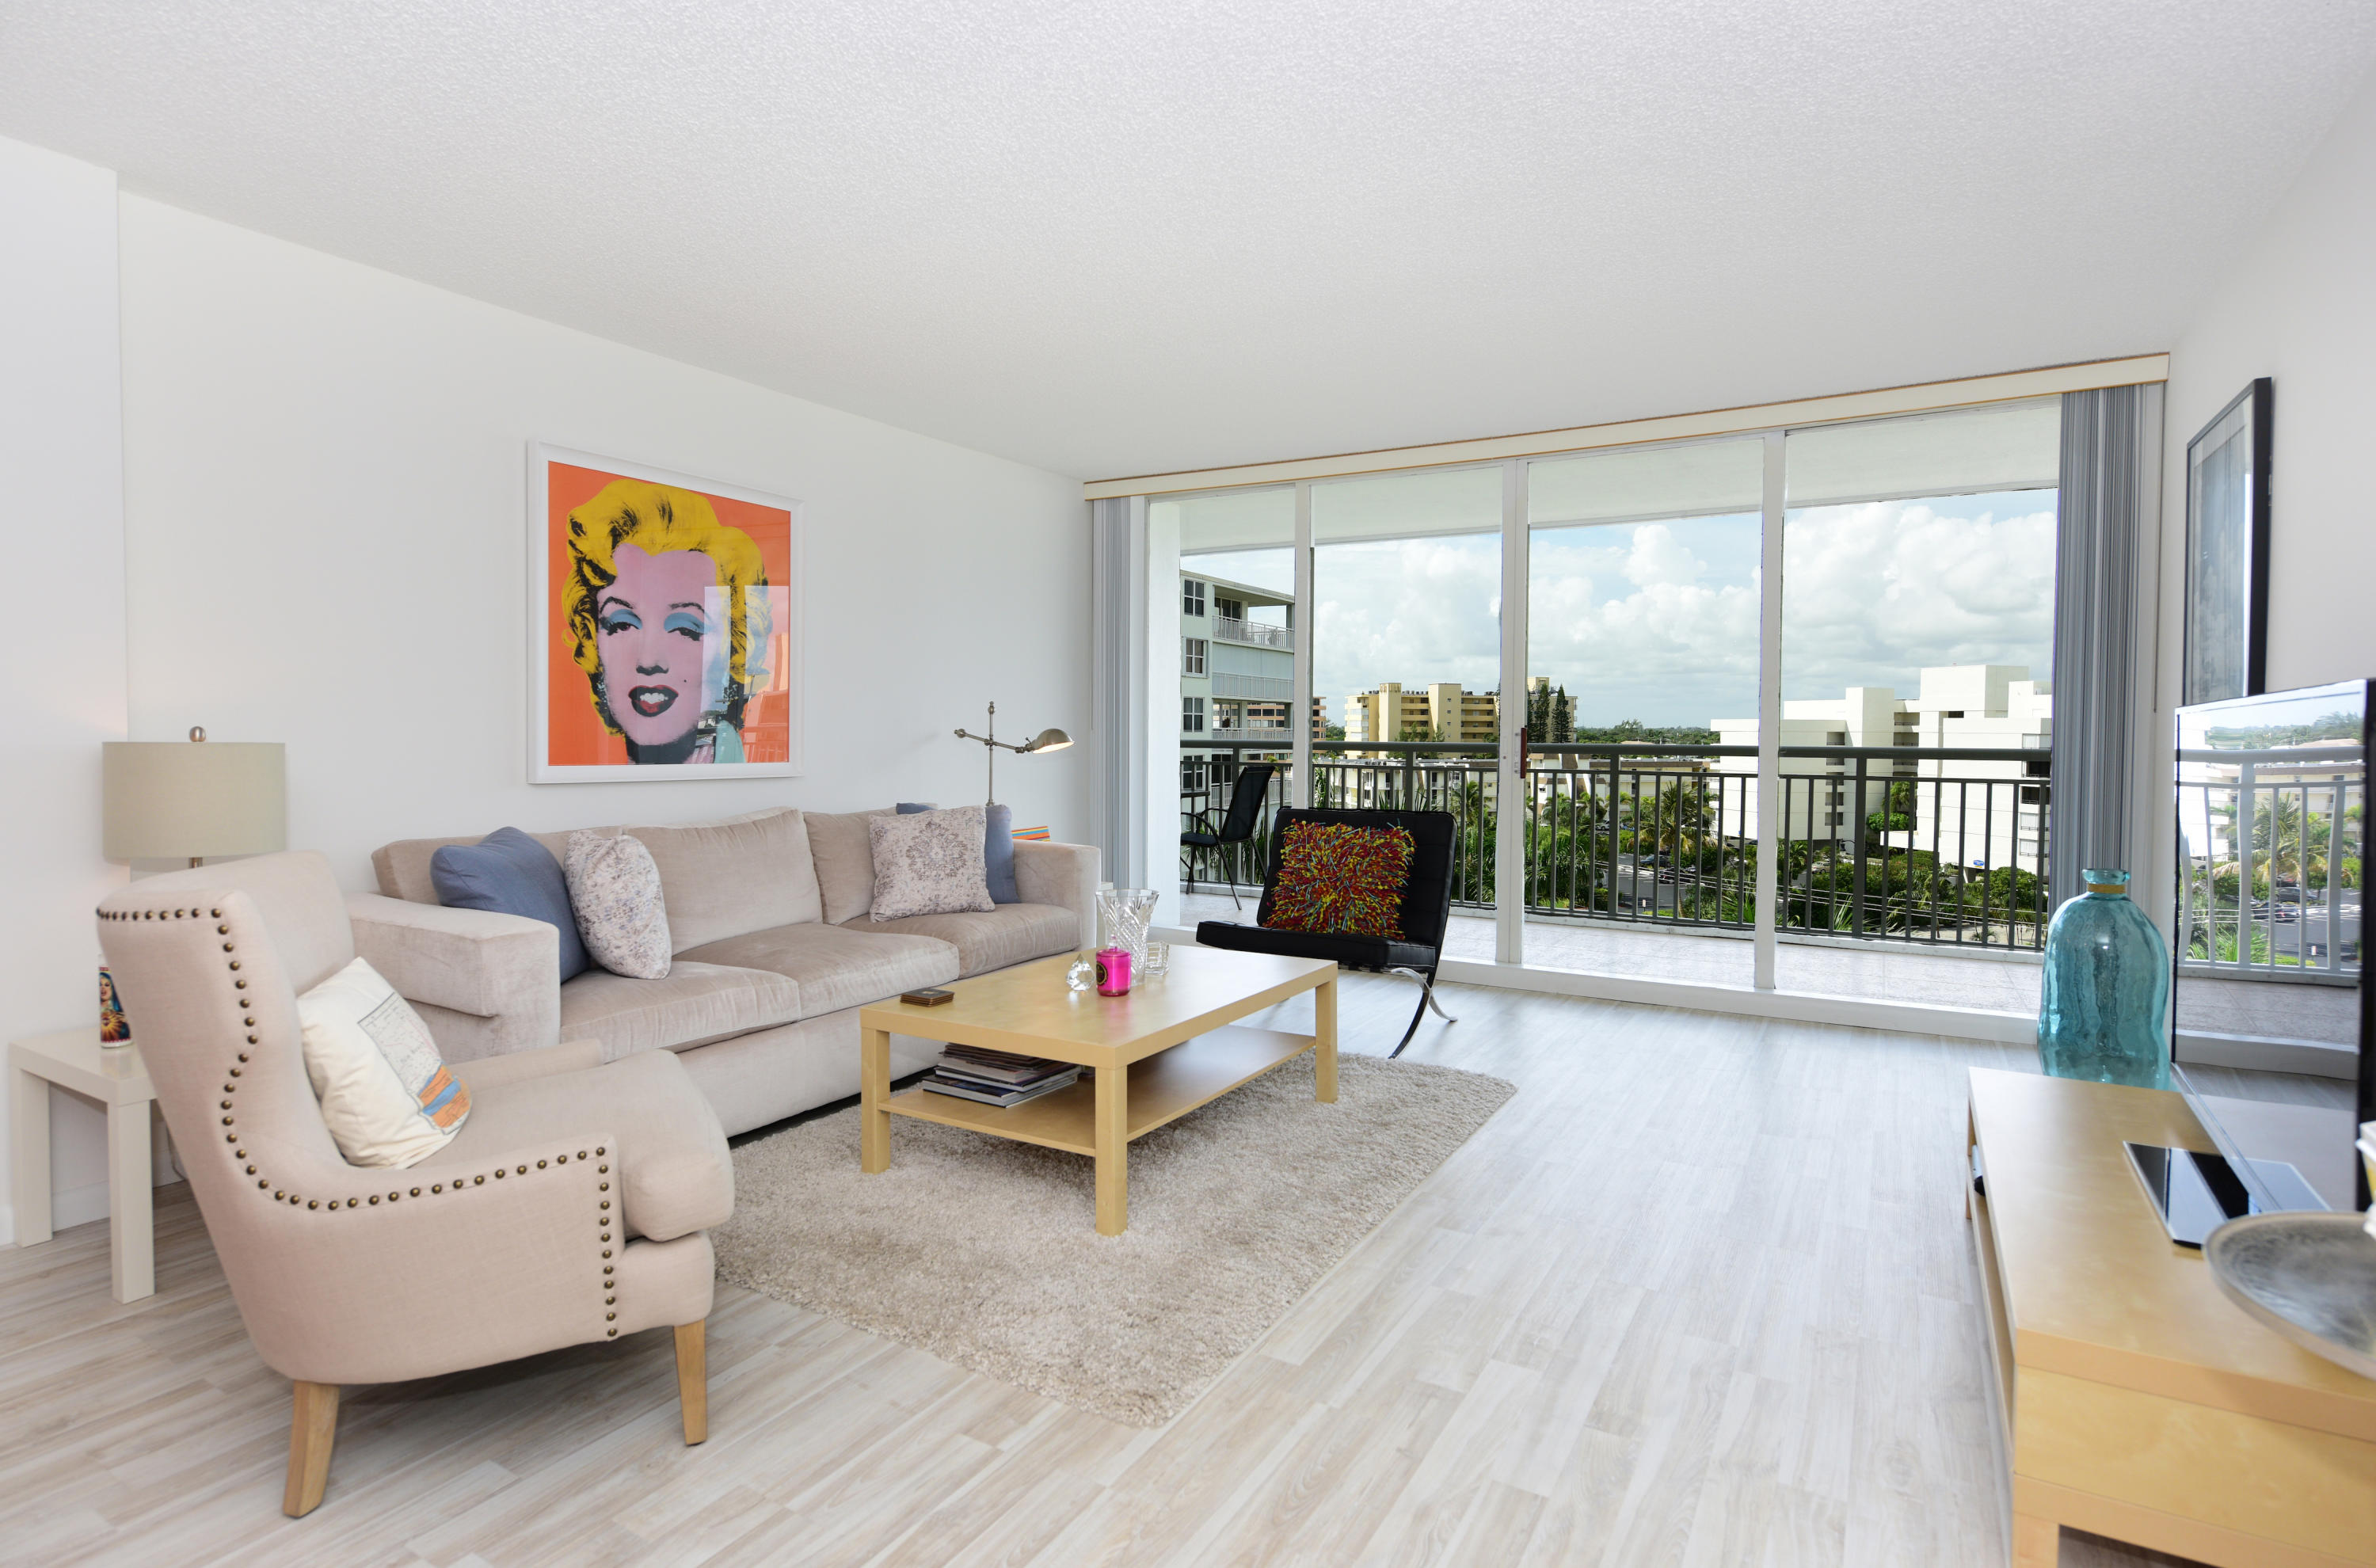 3546 S Ocean Boulevard, 718 - South Palm Beach, Florida